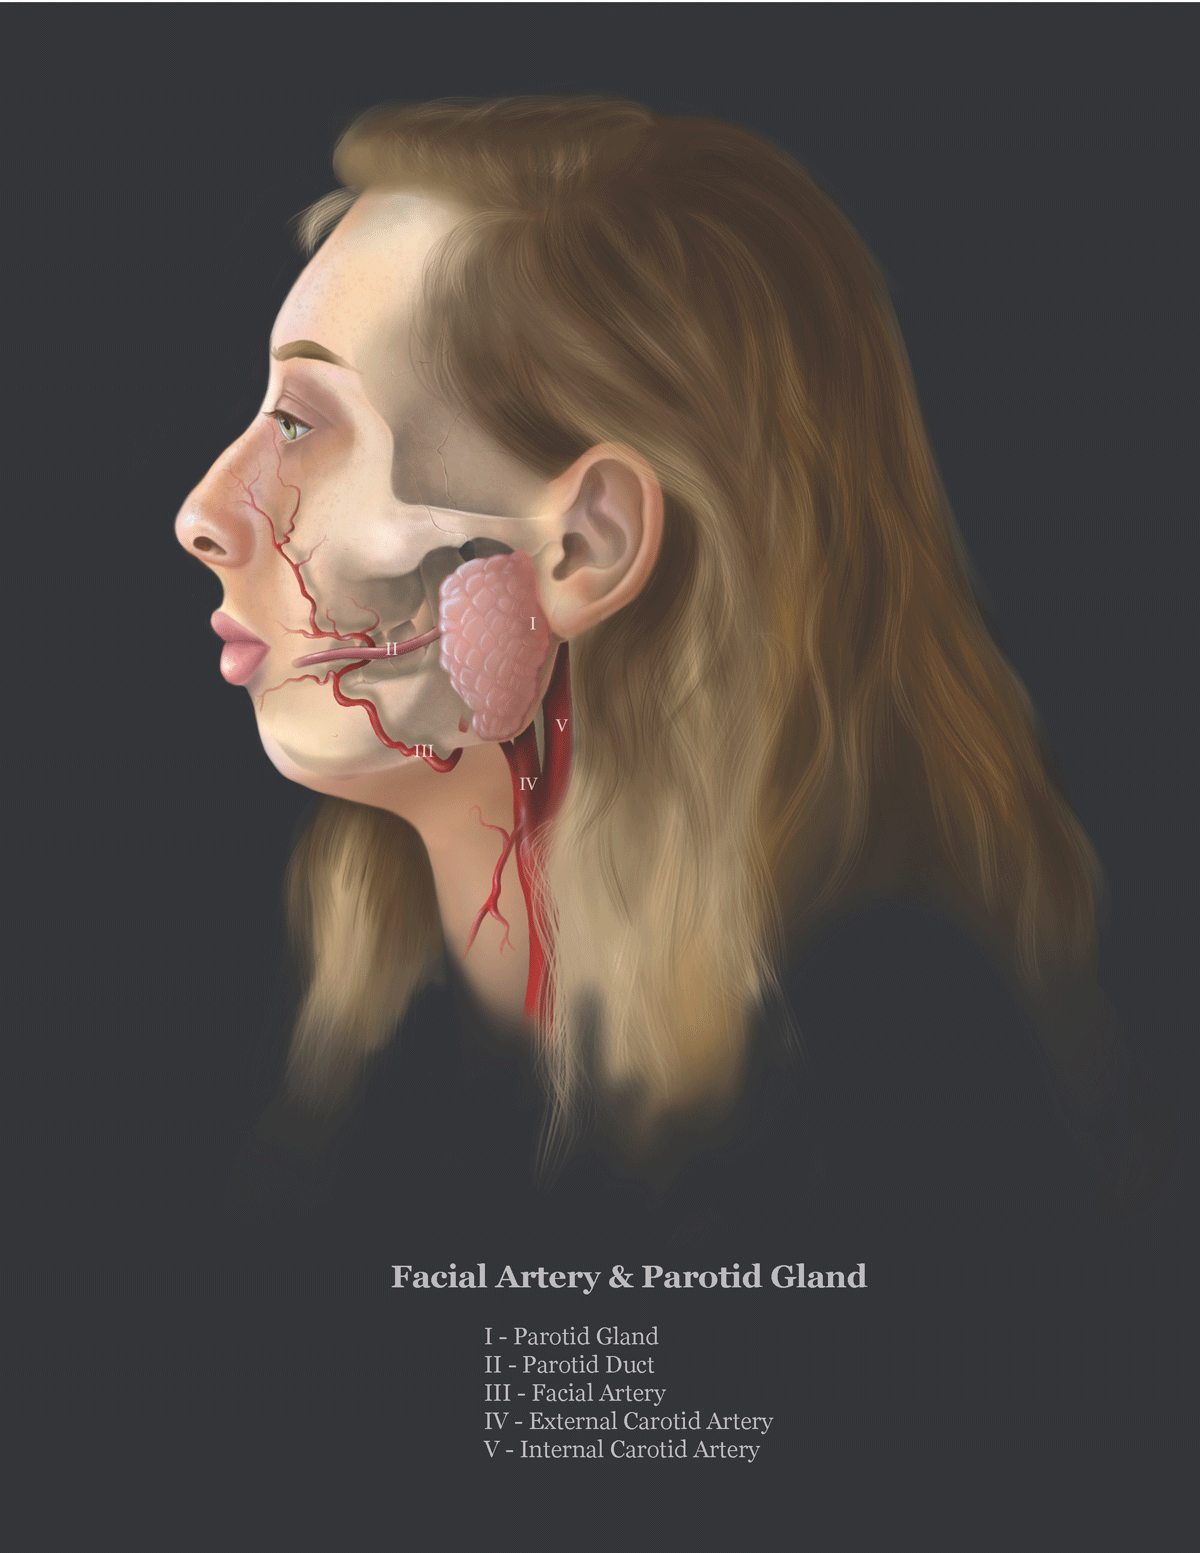 Scientific Illustration by Julia Lunavictoria of a self portrait depicting internal face anatomy with arteries